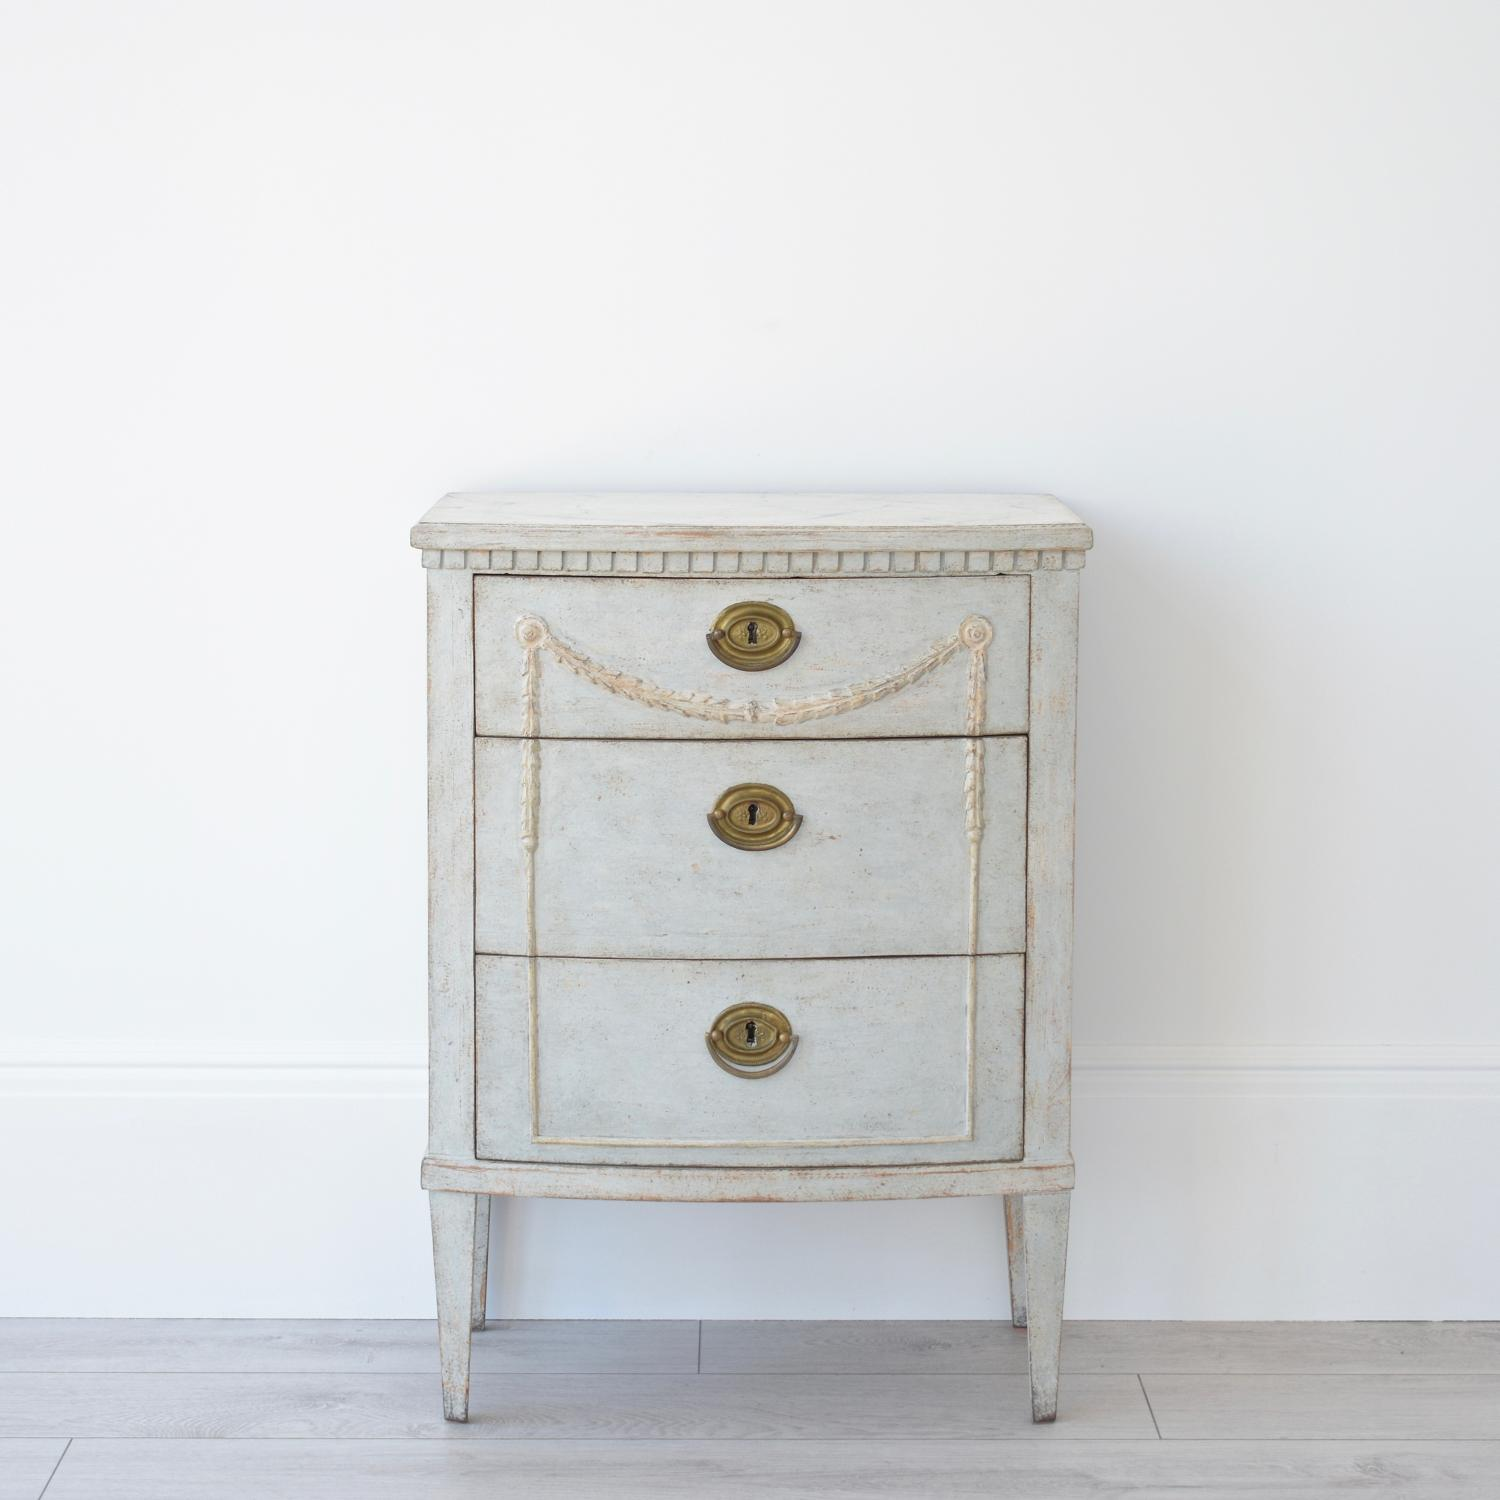 FINE GUSTAVIAN STYLE BOW FRONT BEDSIDE CHEST